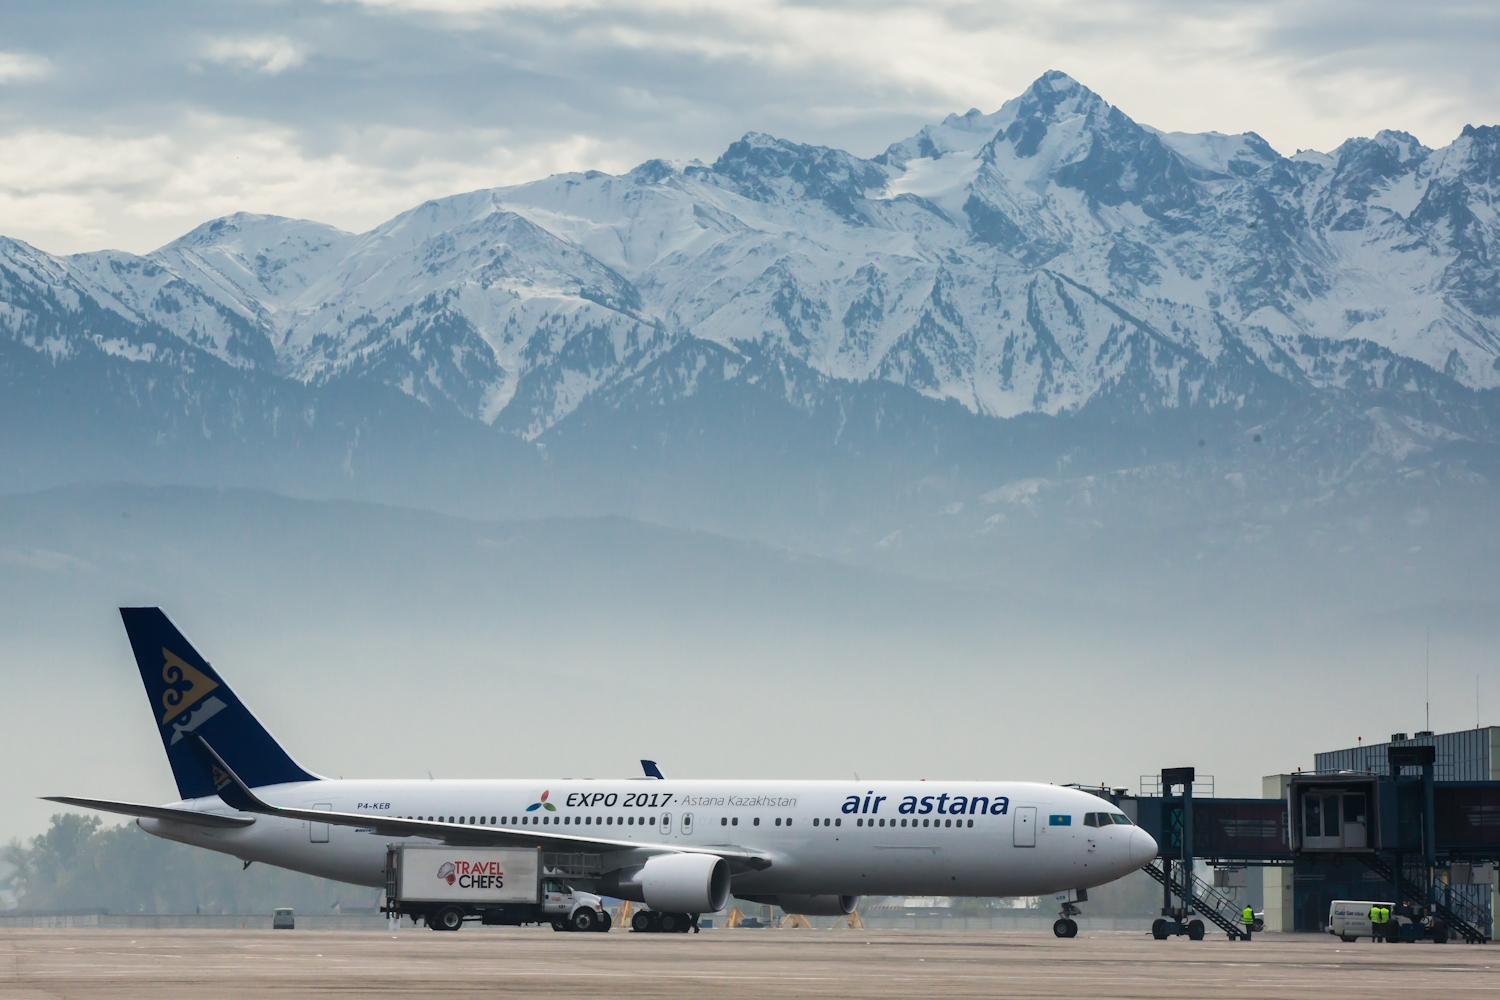 almaty airport / air astana